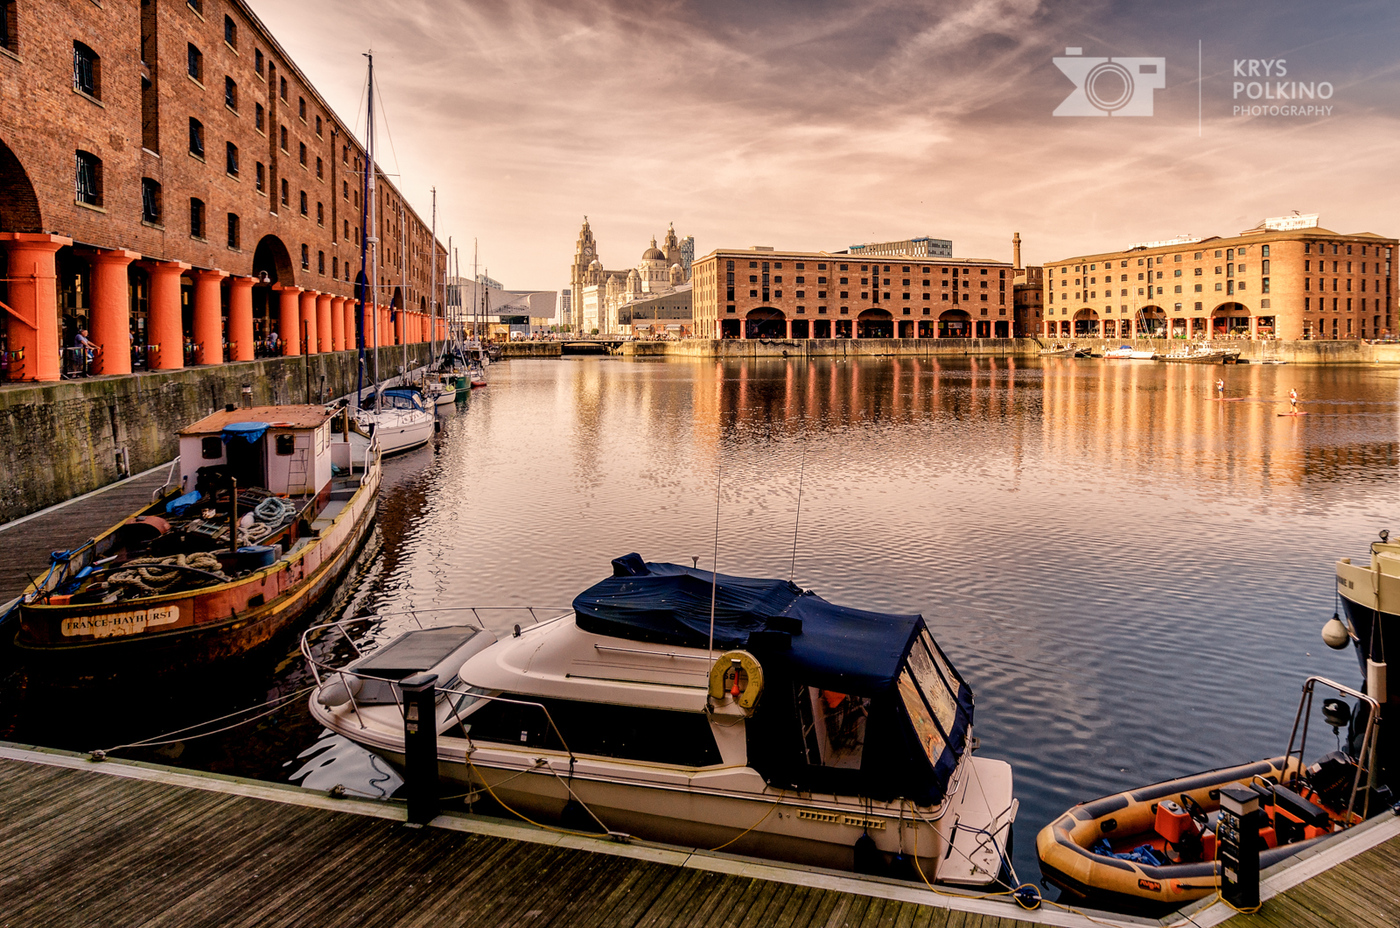 My 10 best places to see and photograph in Liverpool.